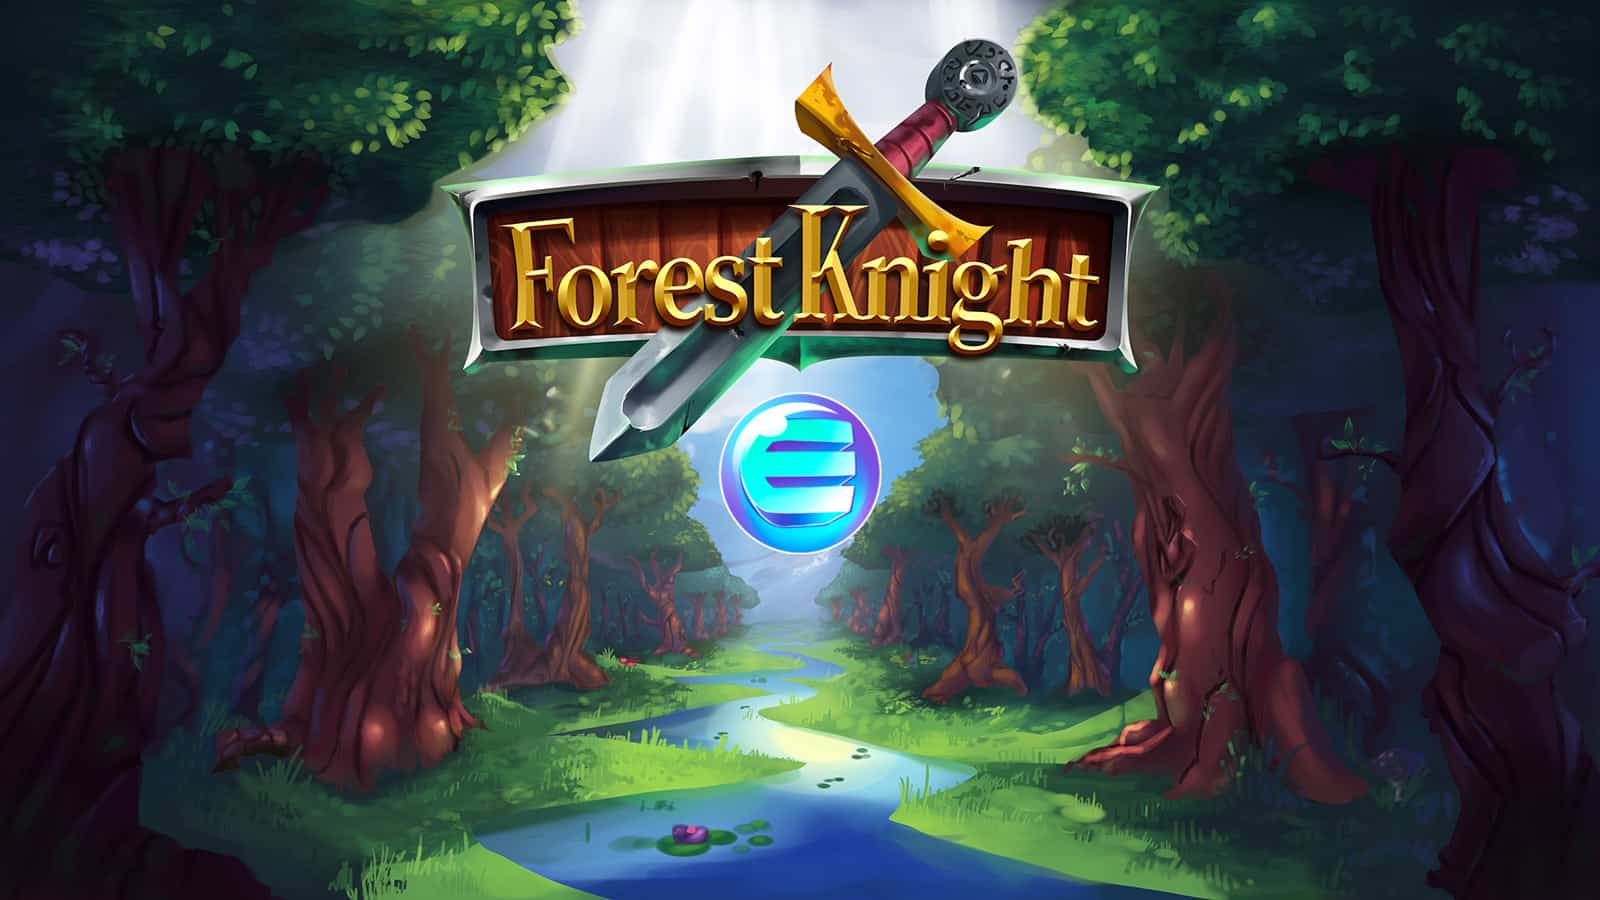 Forest Knights Blockchain Powered Game With ENJ Economy